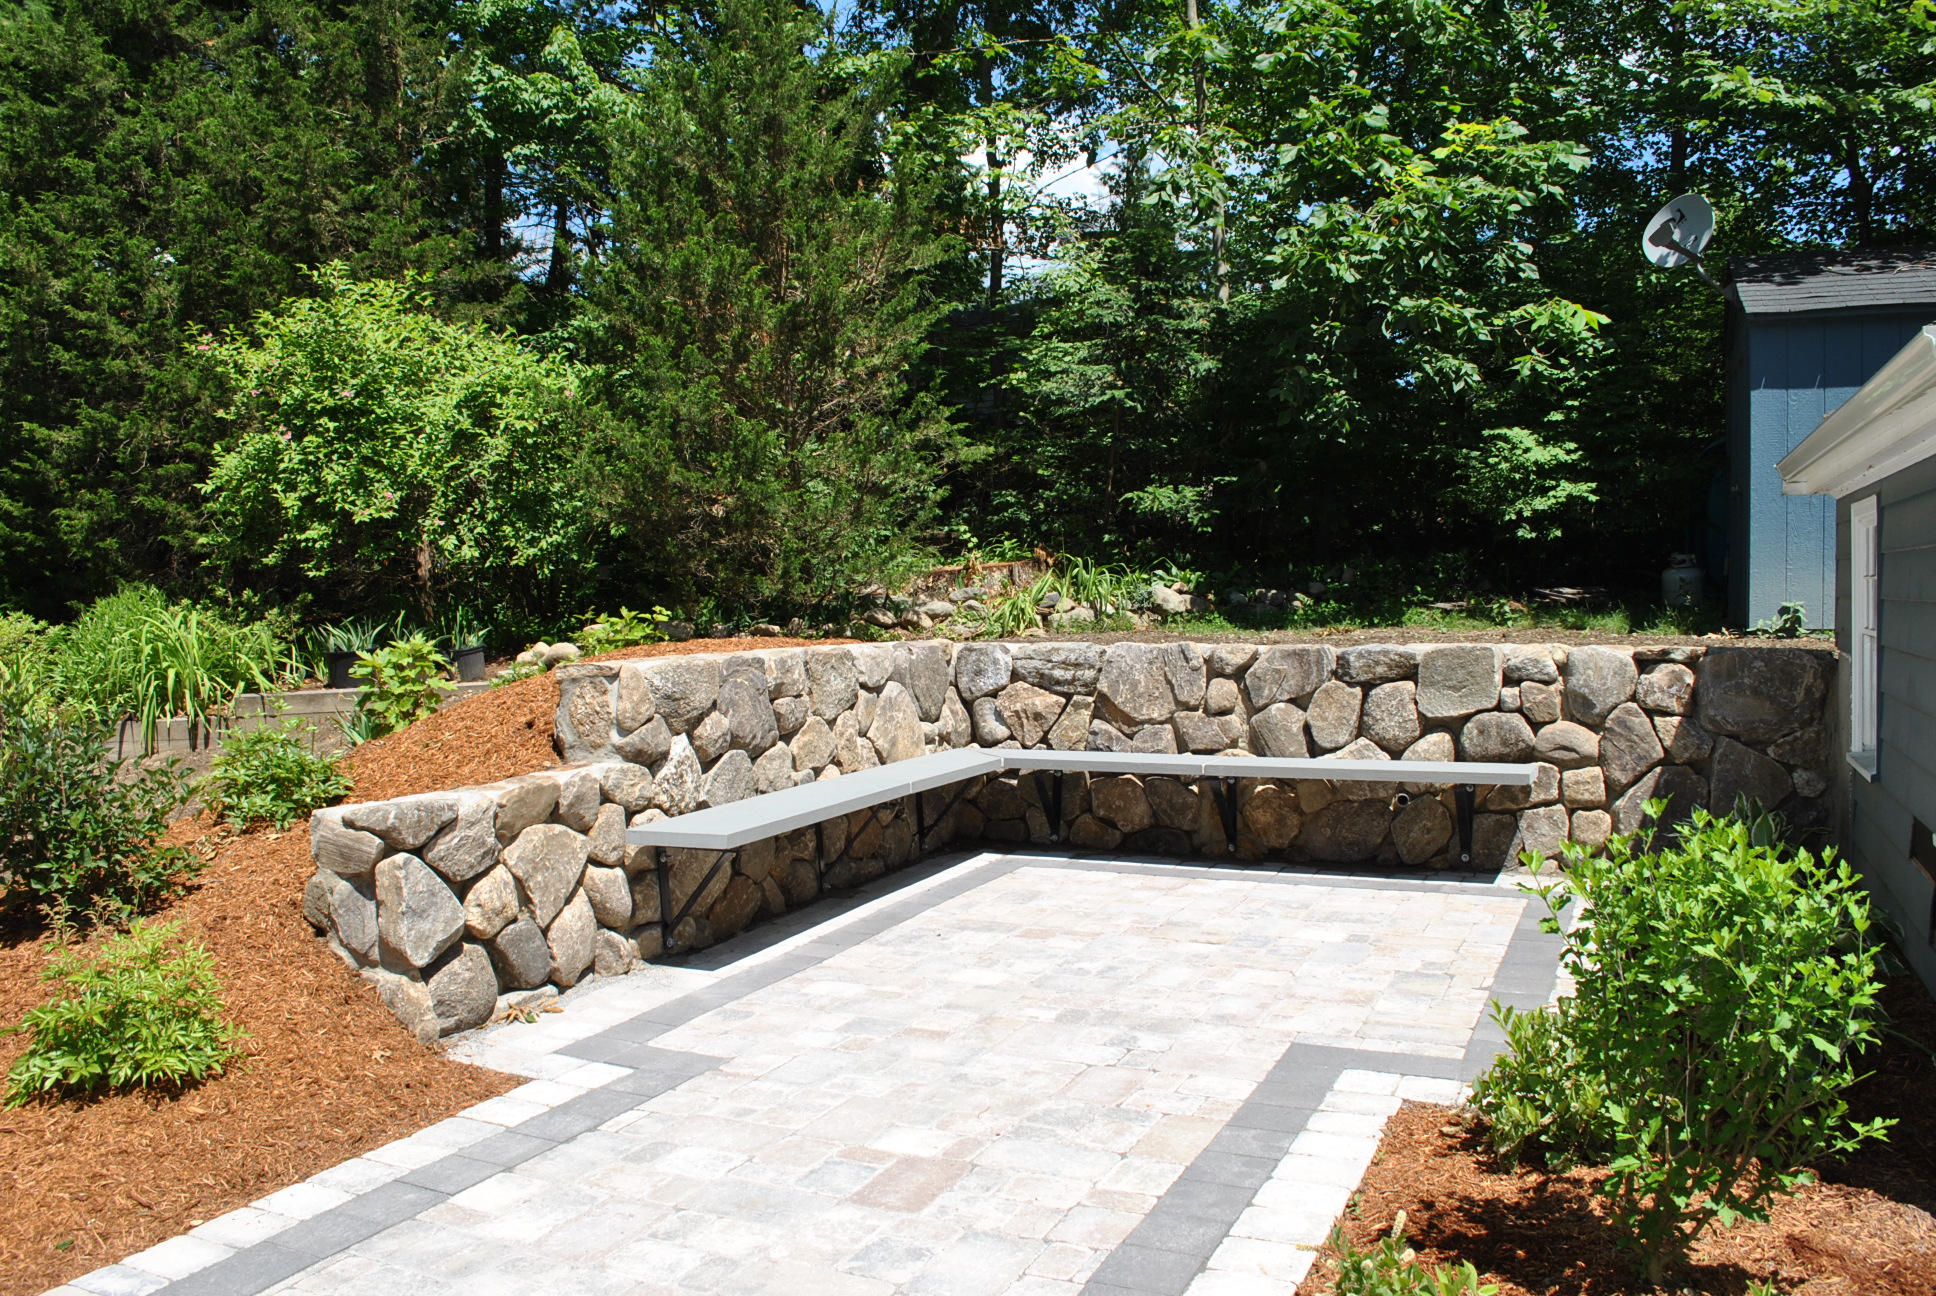 The New Stone Age Innovation In Stone Wall Construction